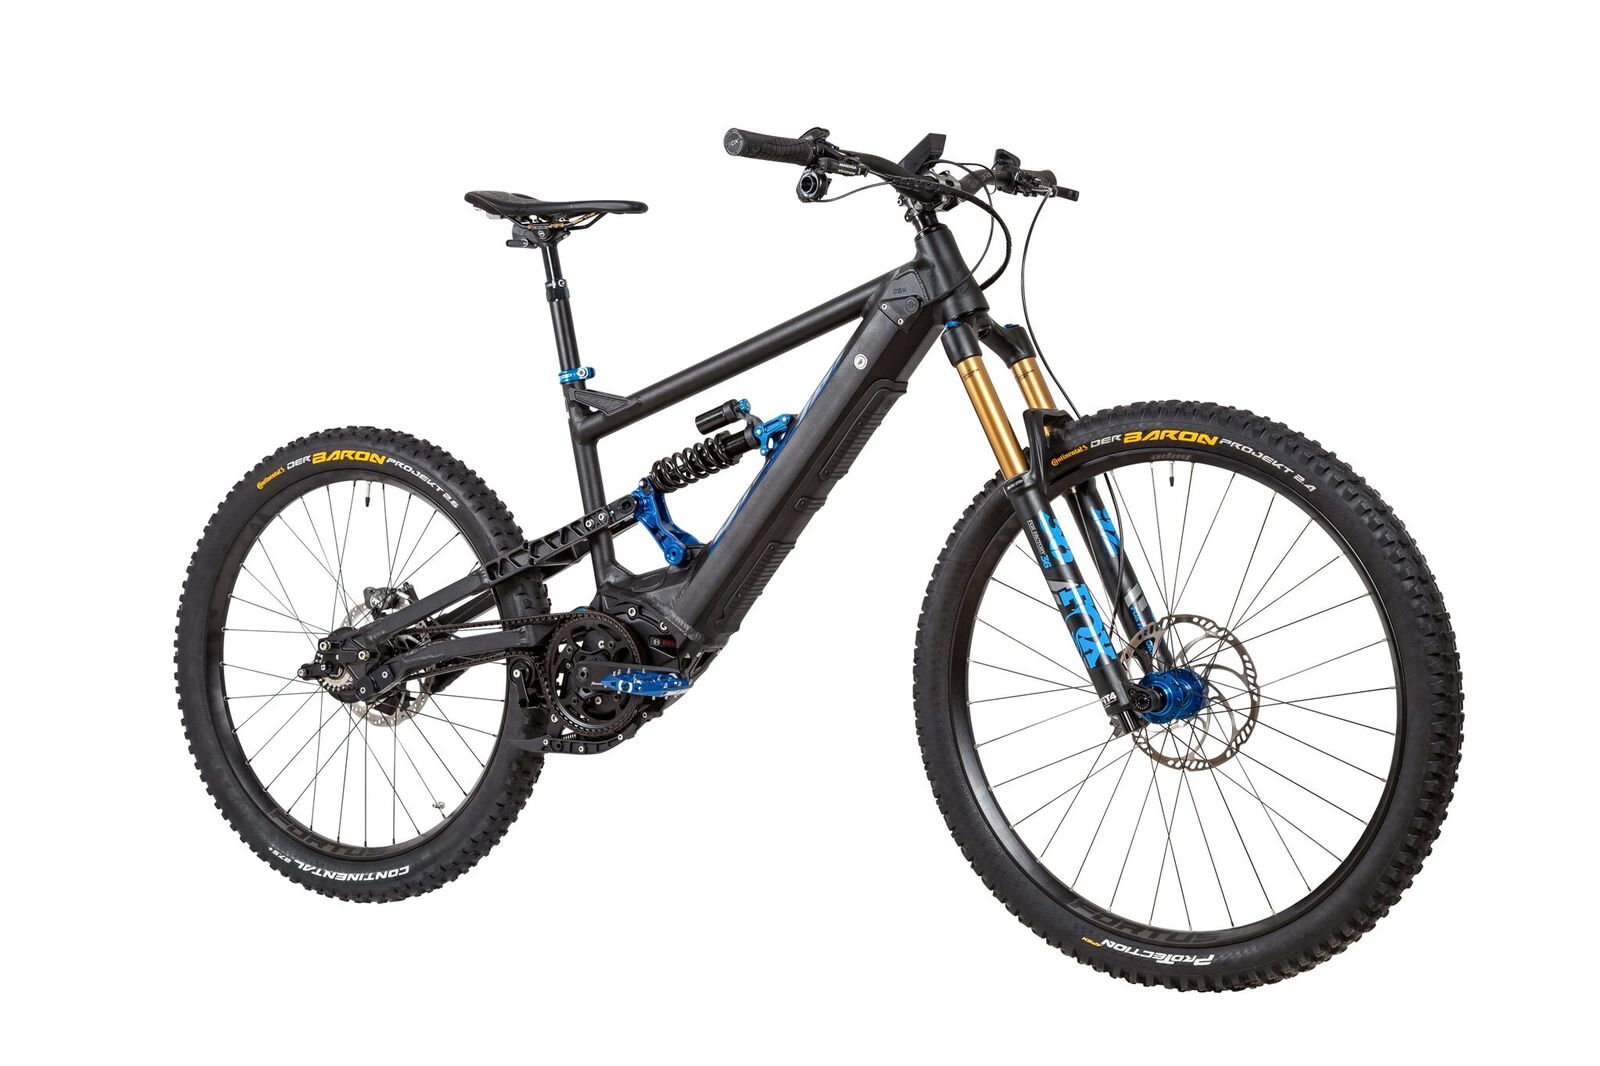 Nicolai G1 Eboxx E14 Electric Mountain Bike W Rohloff